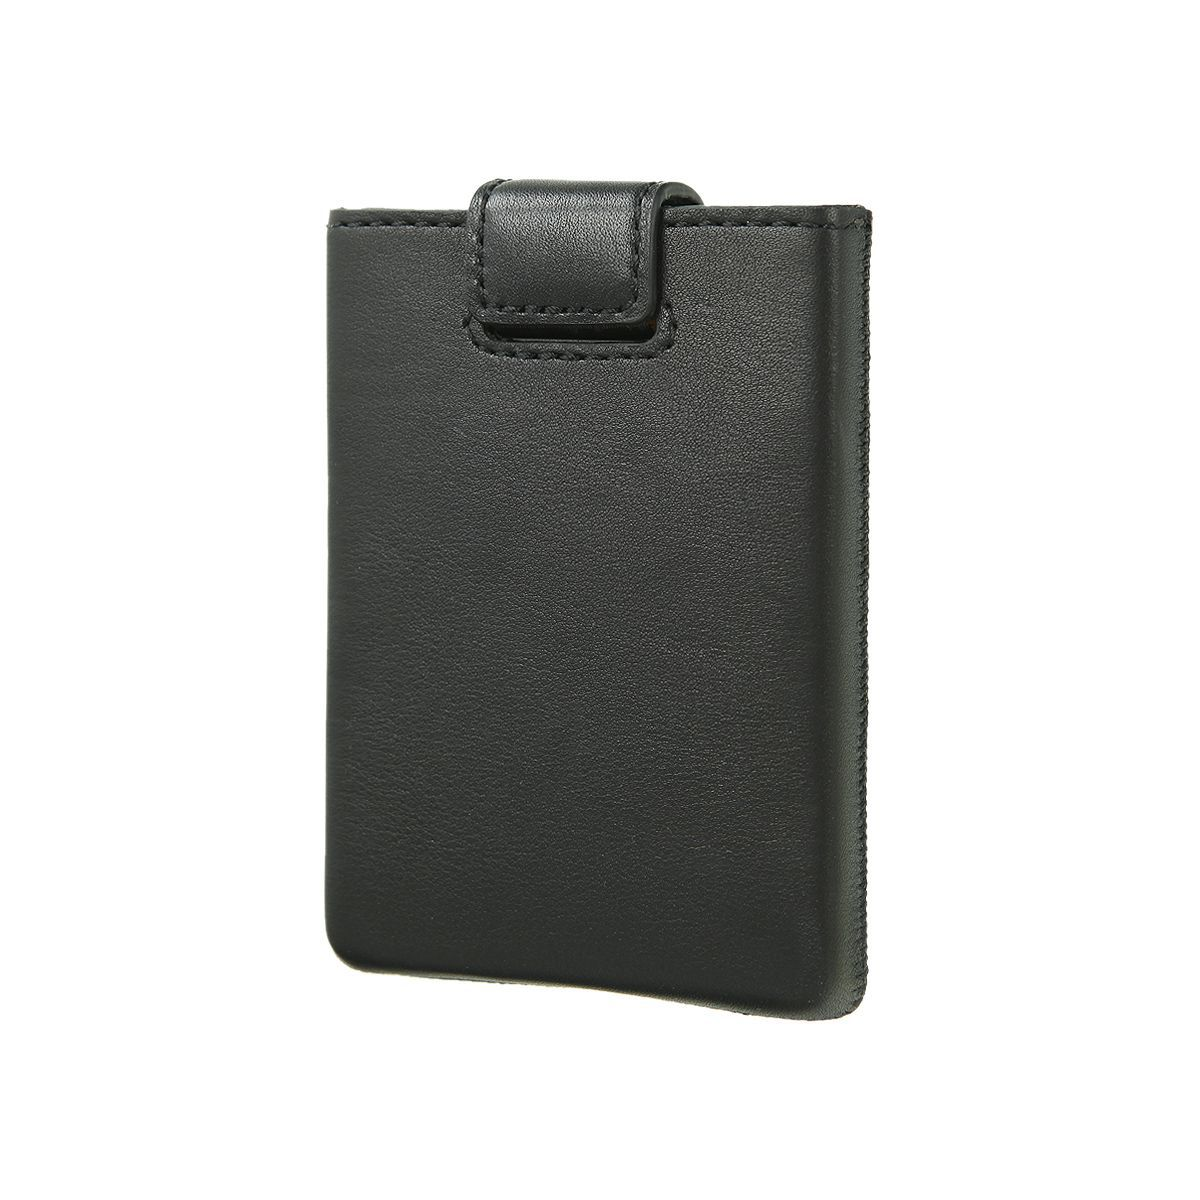 card case pocket zwart